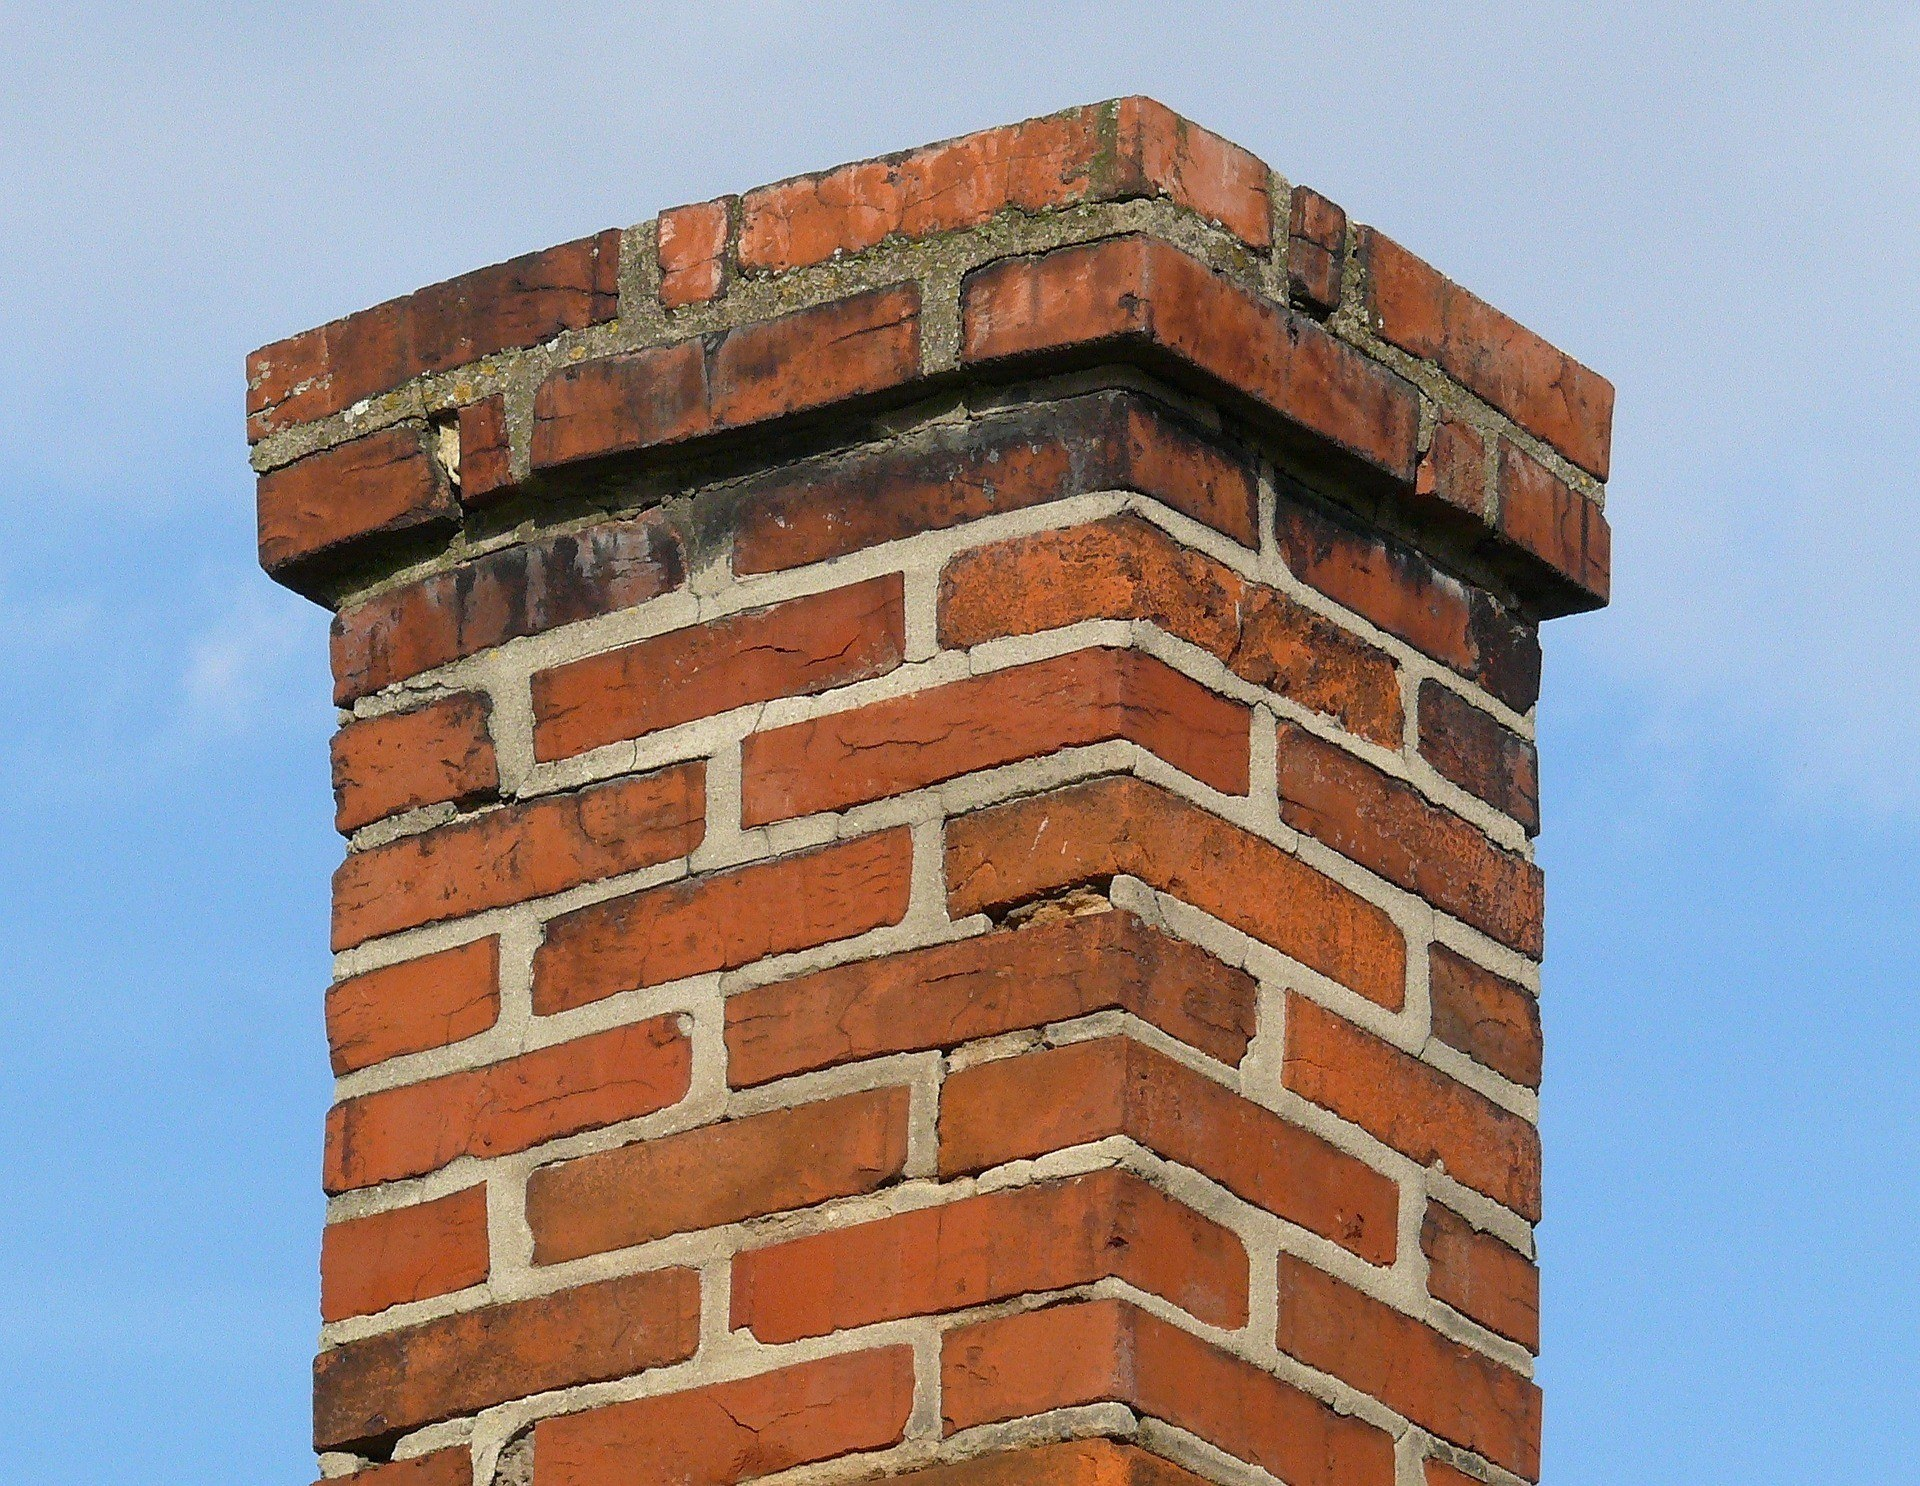 chimney, old, brick moisture